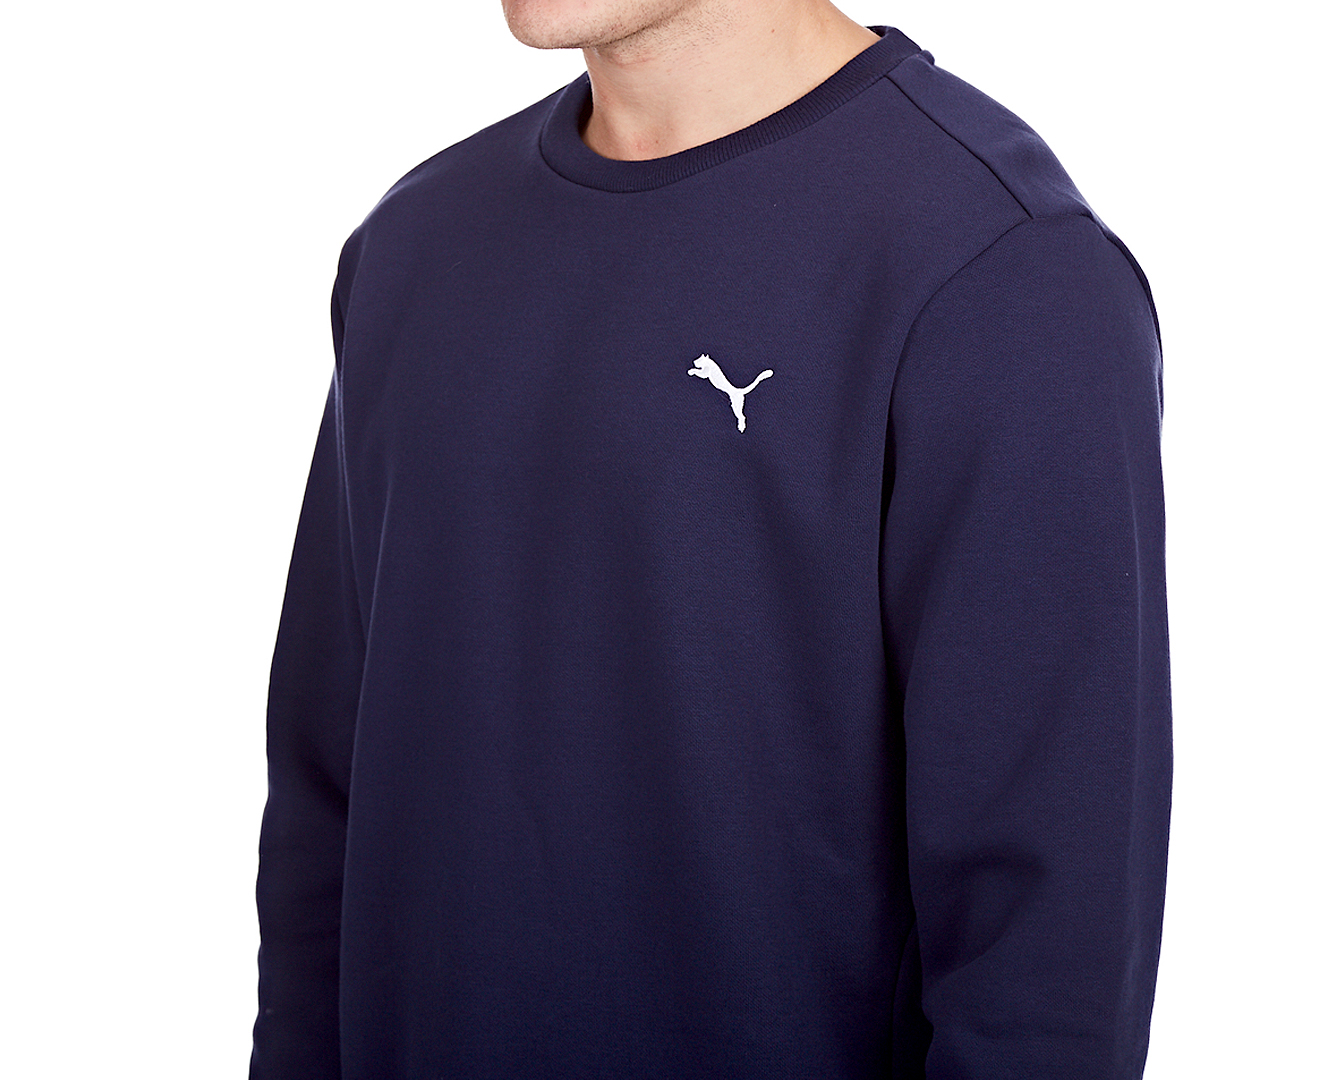 Puma Men's Essential Crew Sweatshirt - Peacoat